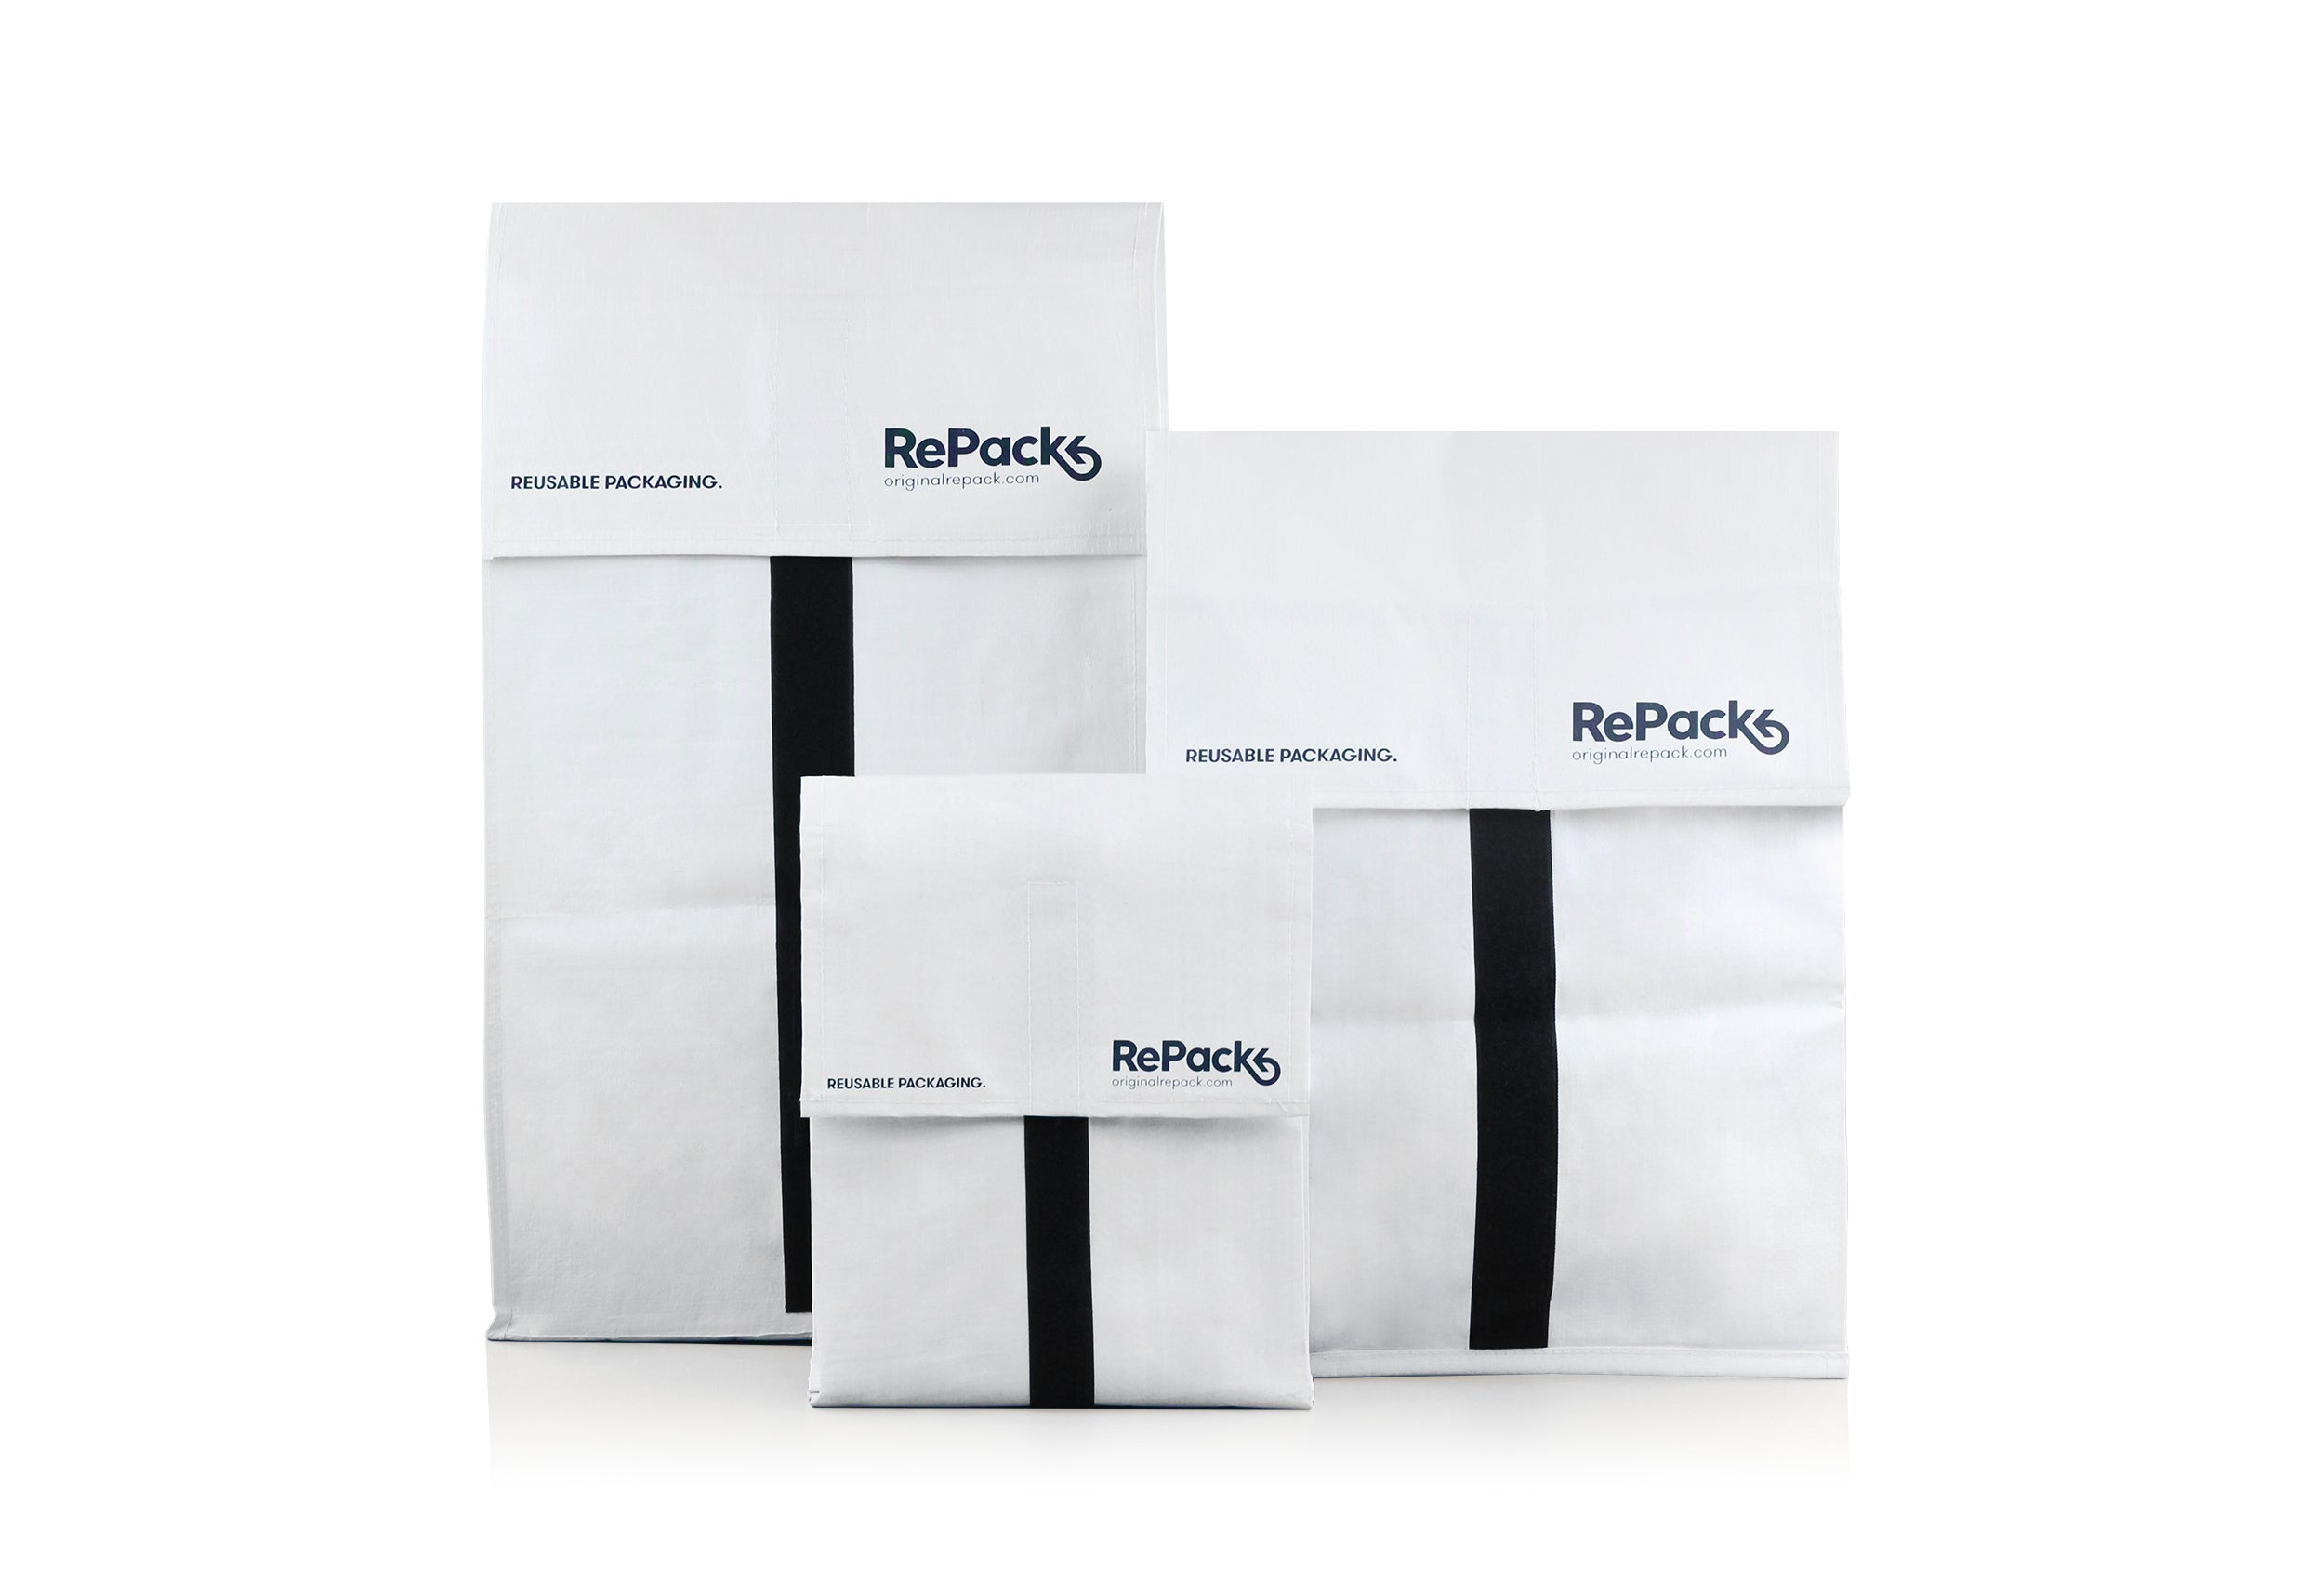 RePack Reusable Packaging